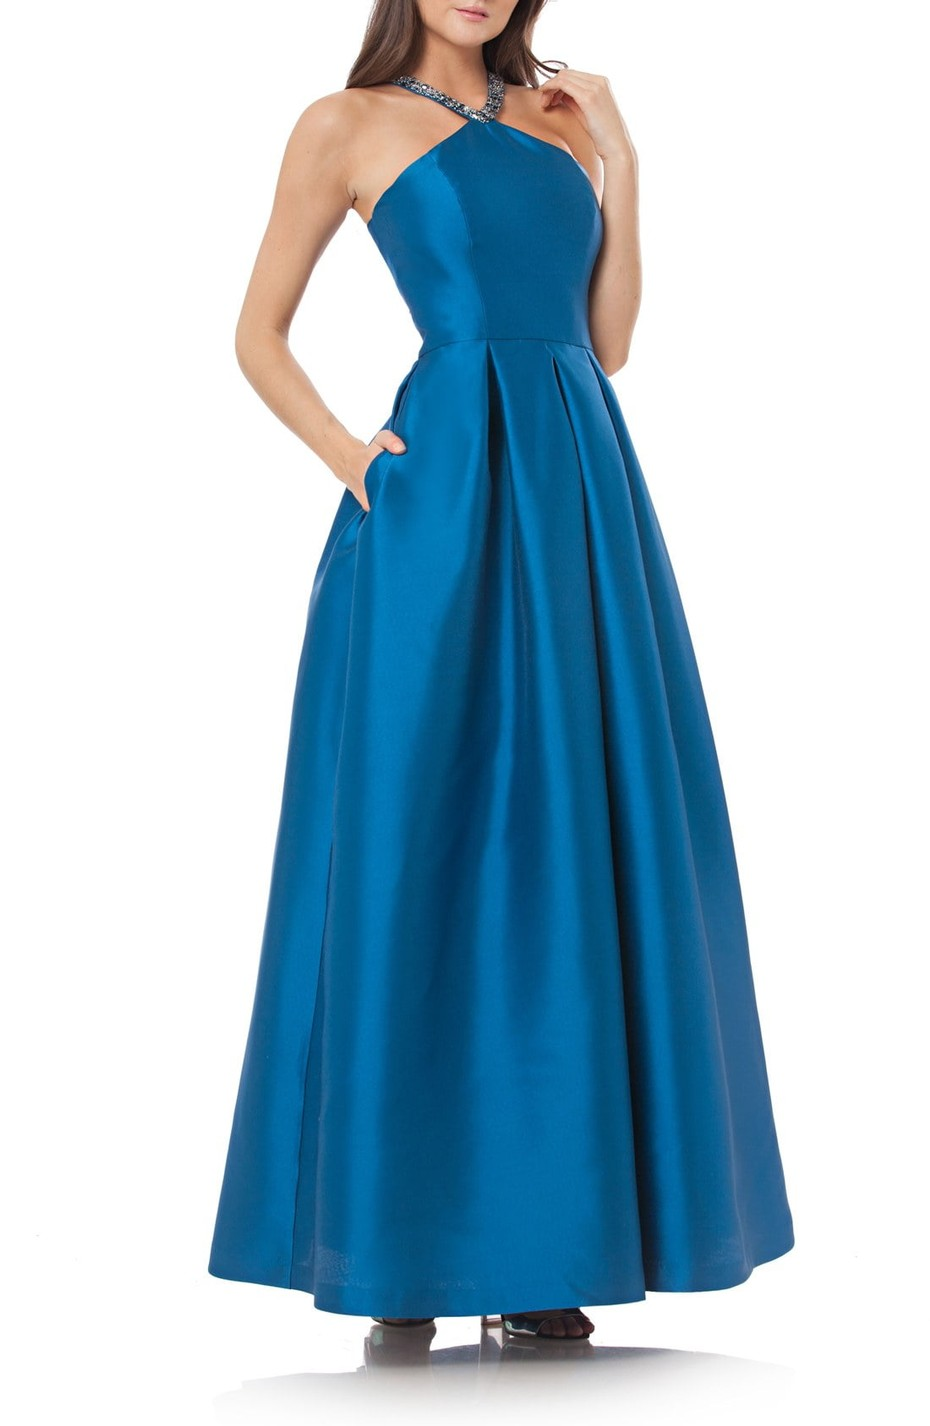 Partying in Style! 45 Fashion-Forward Reception Dresses You Can ...